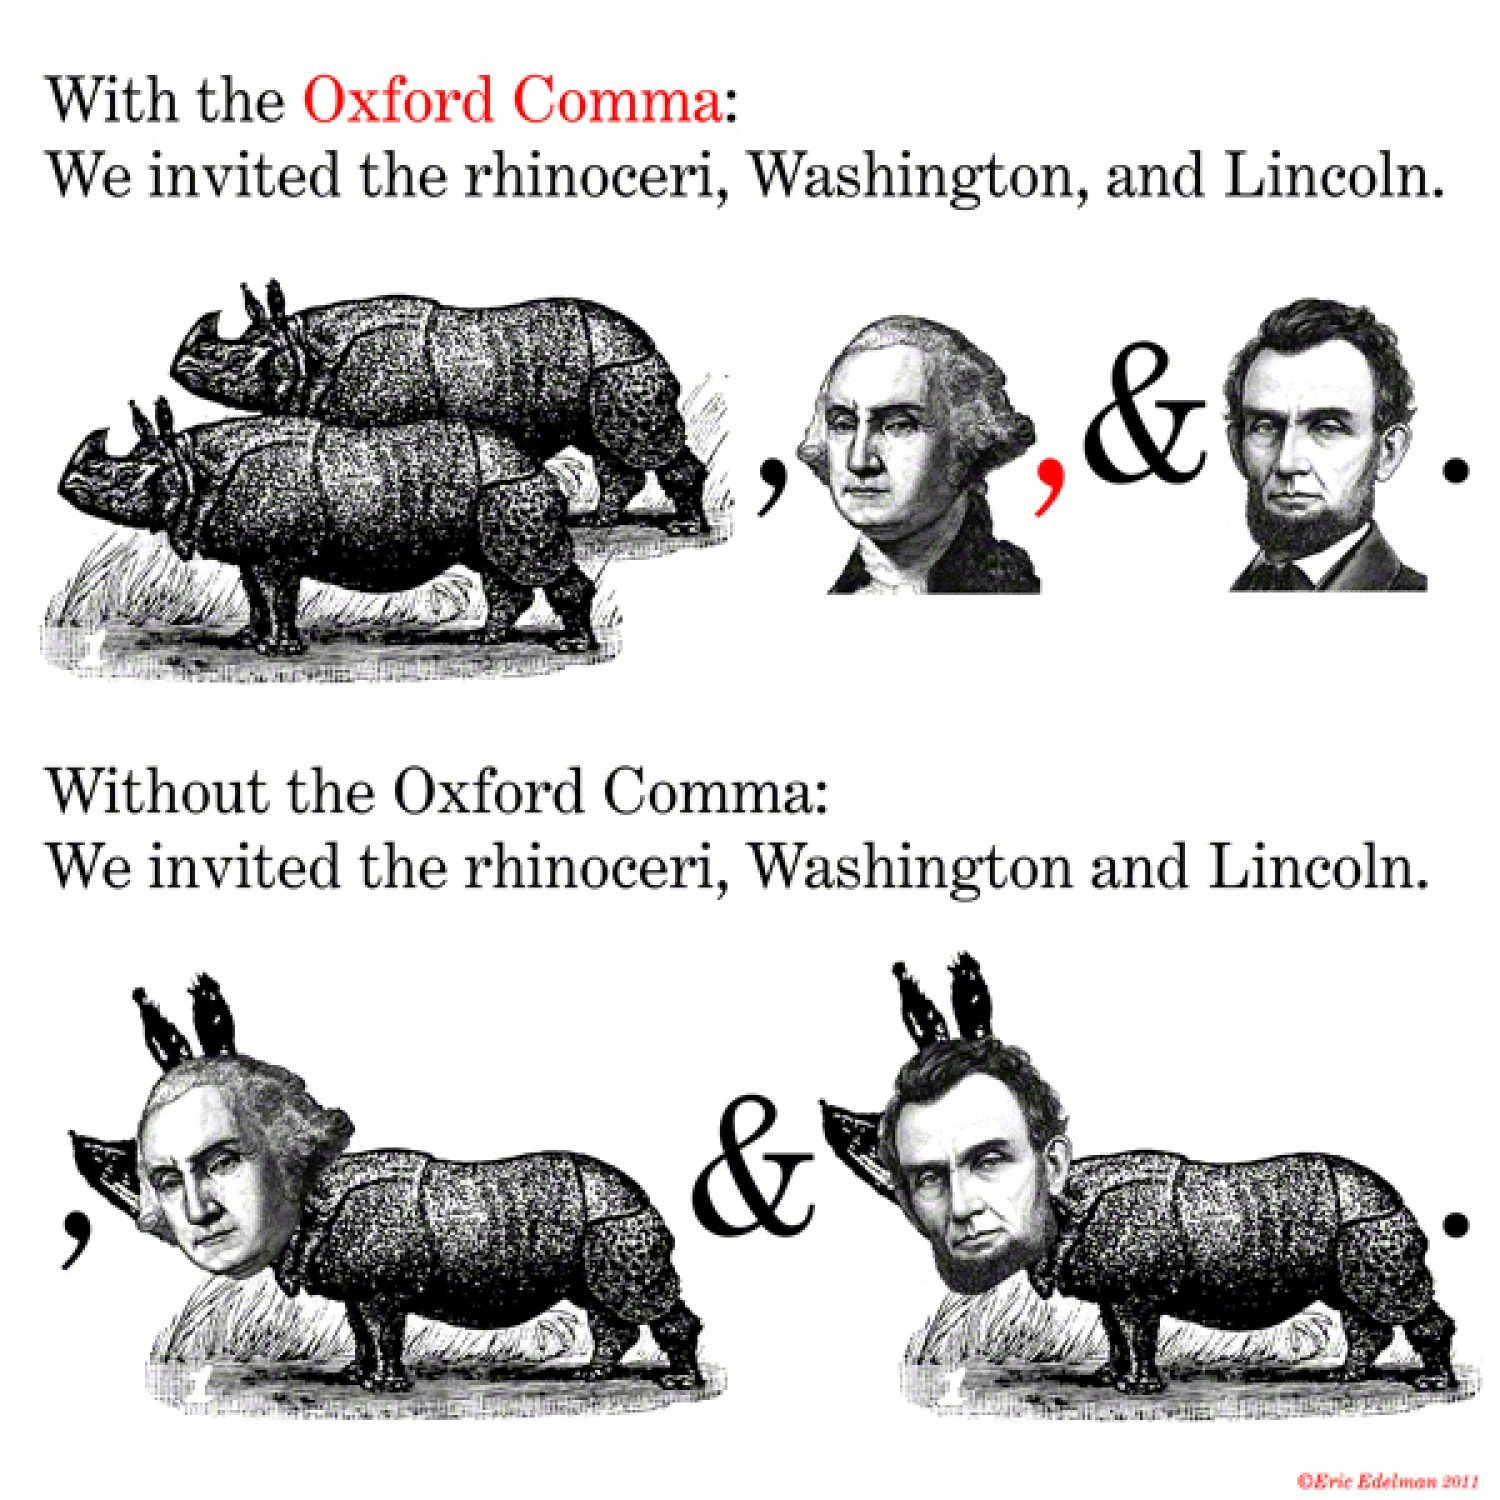 Oxford Comma | Know Your Meme